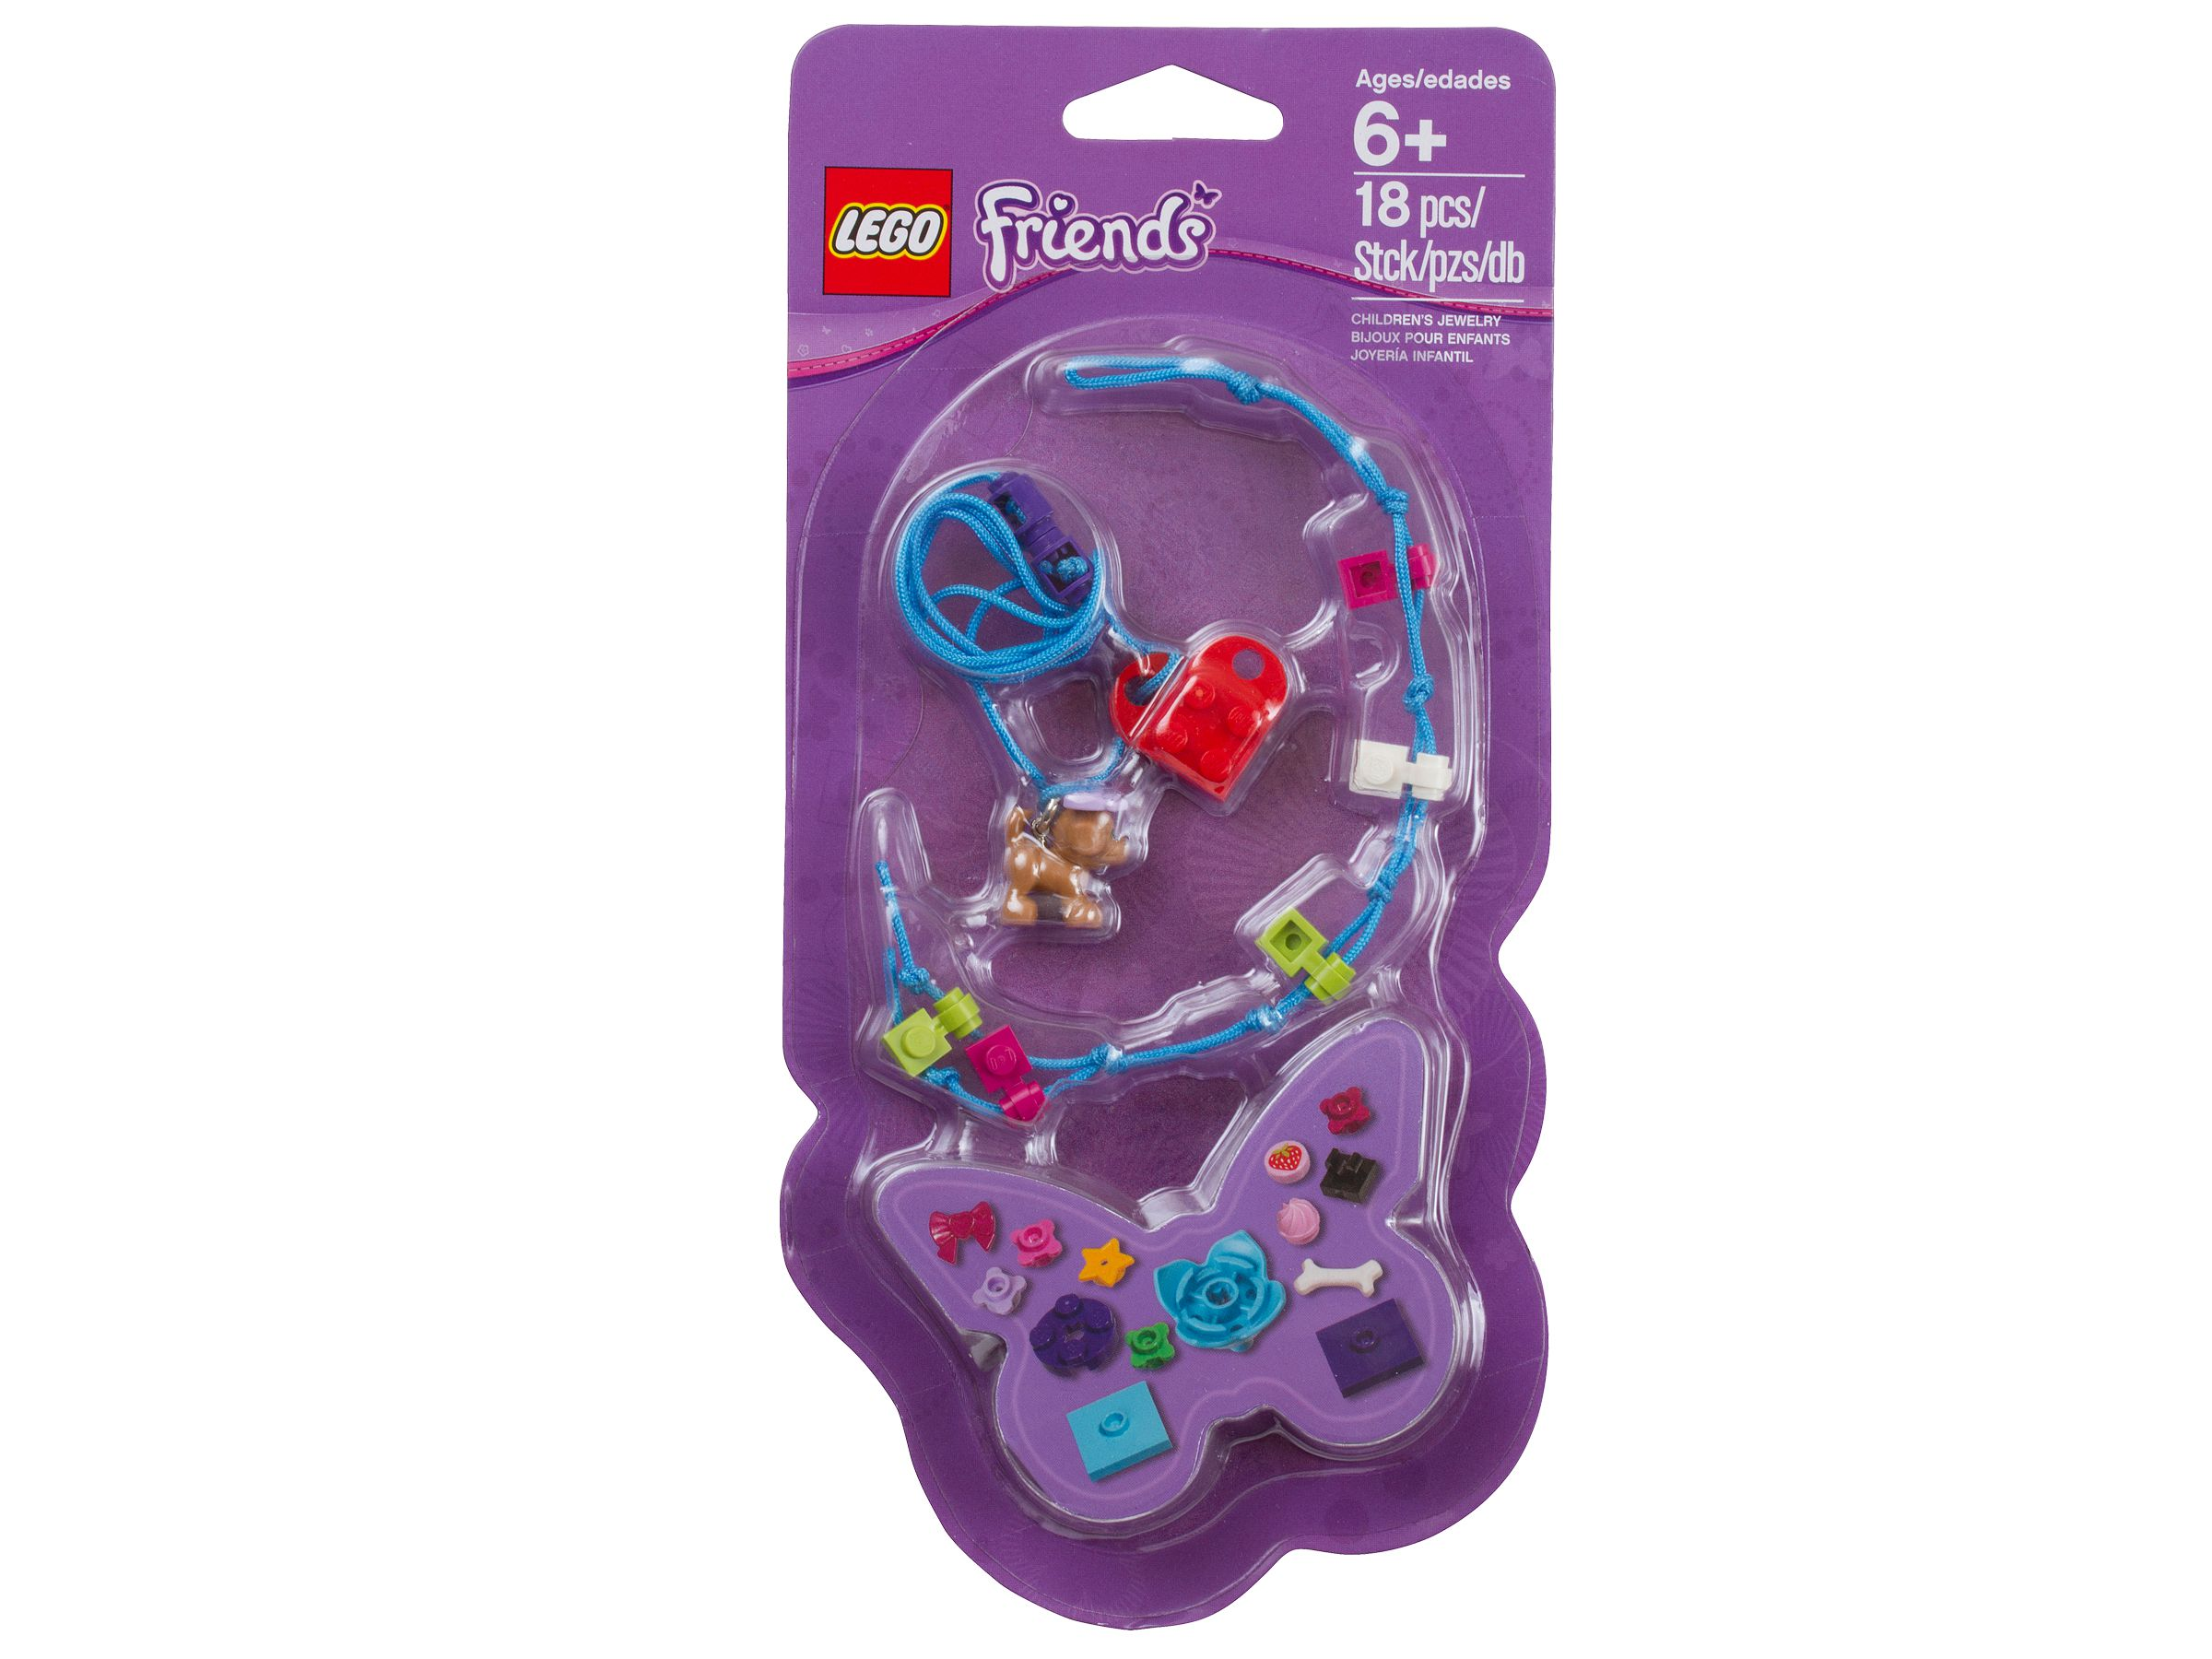 LEGO Gear 853440 LEGO® Friends Schmuck-Set LEGO_853440_alt1.jpg